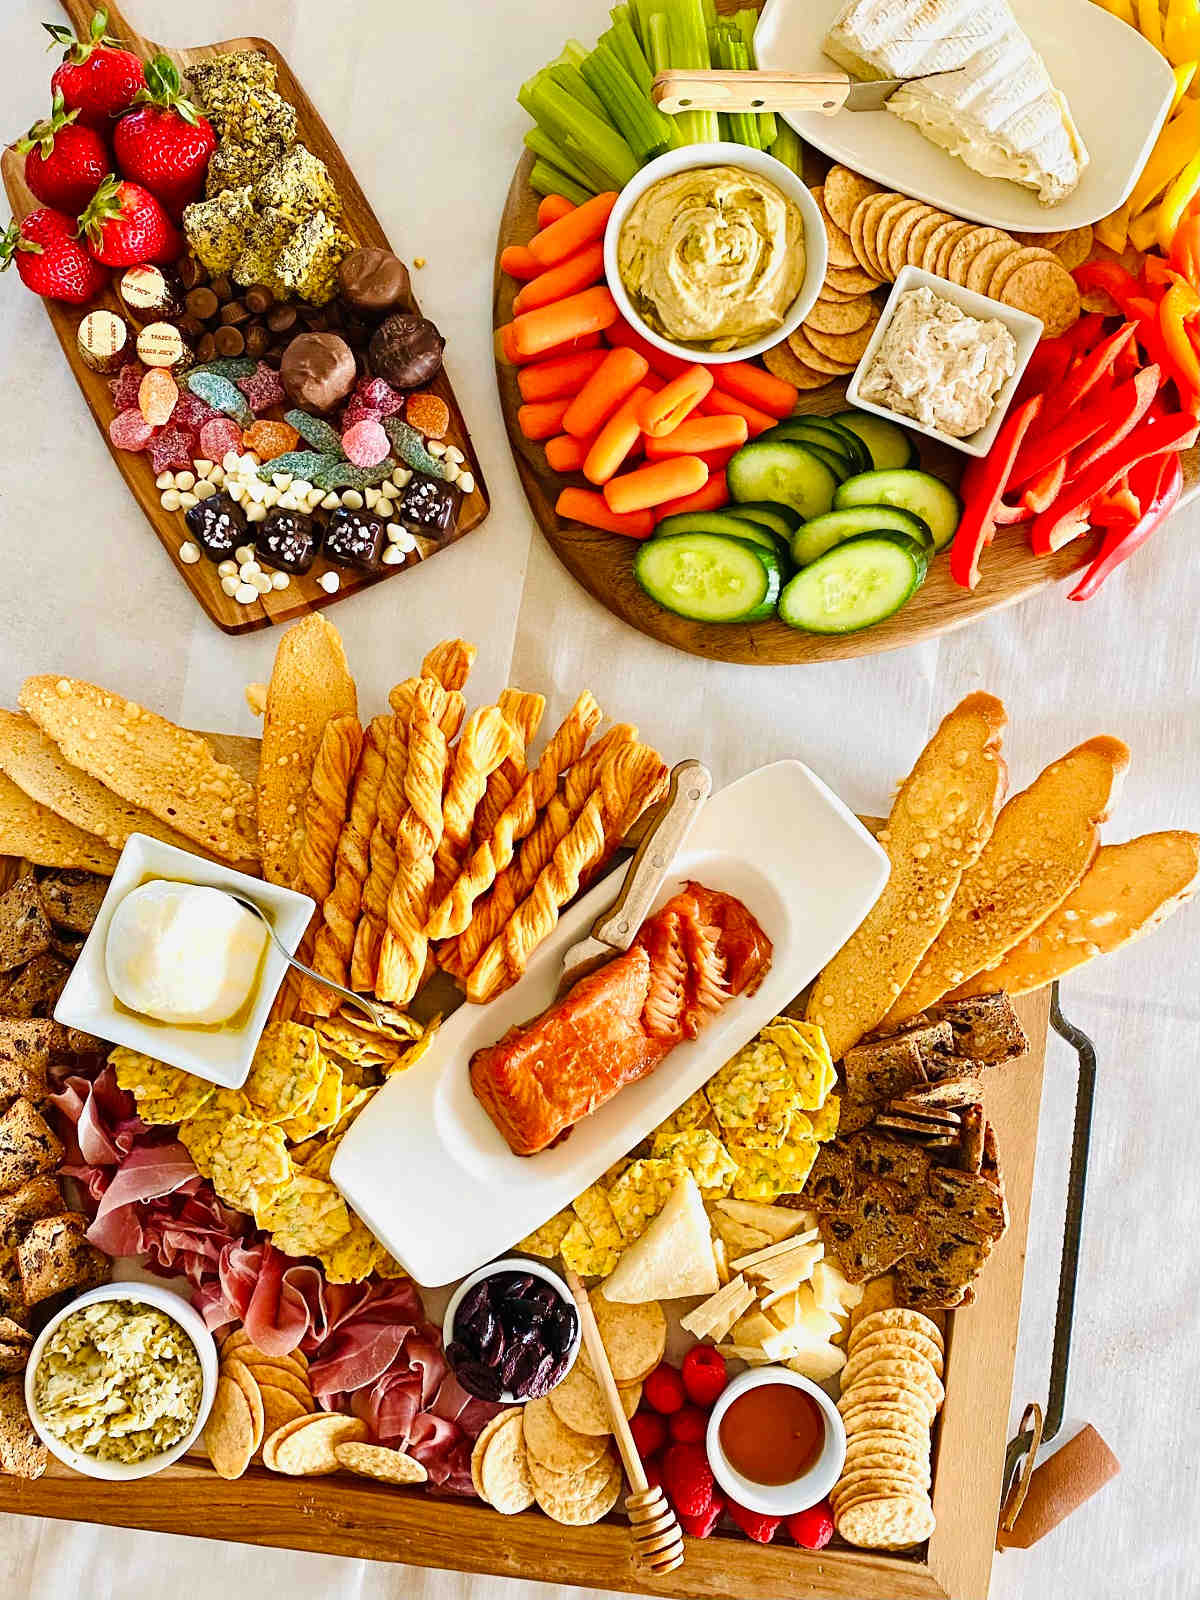 Vegetarian charcuterie board, desert charcuterie board and trader joe's cheese and meat board